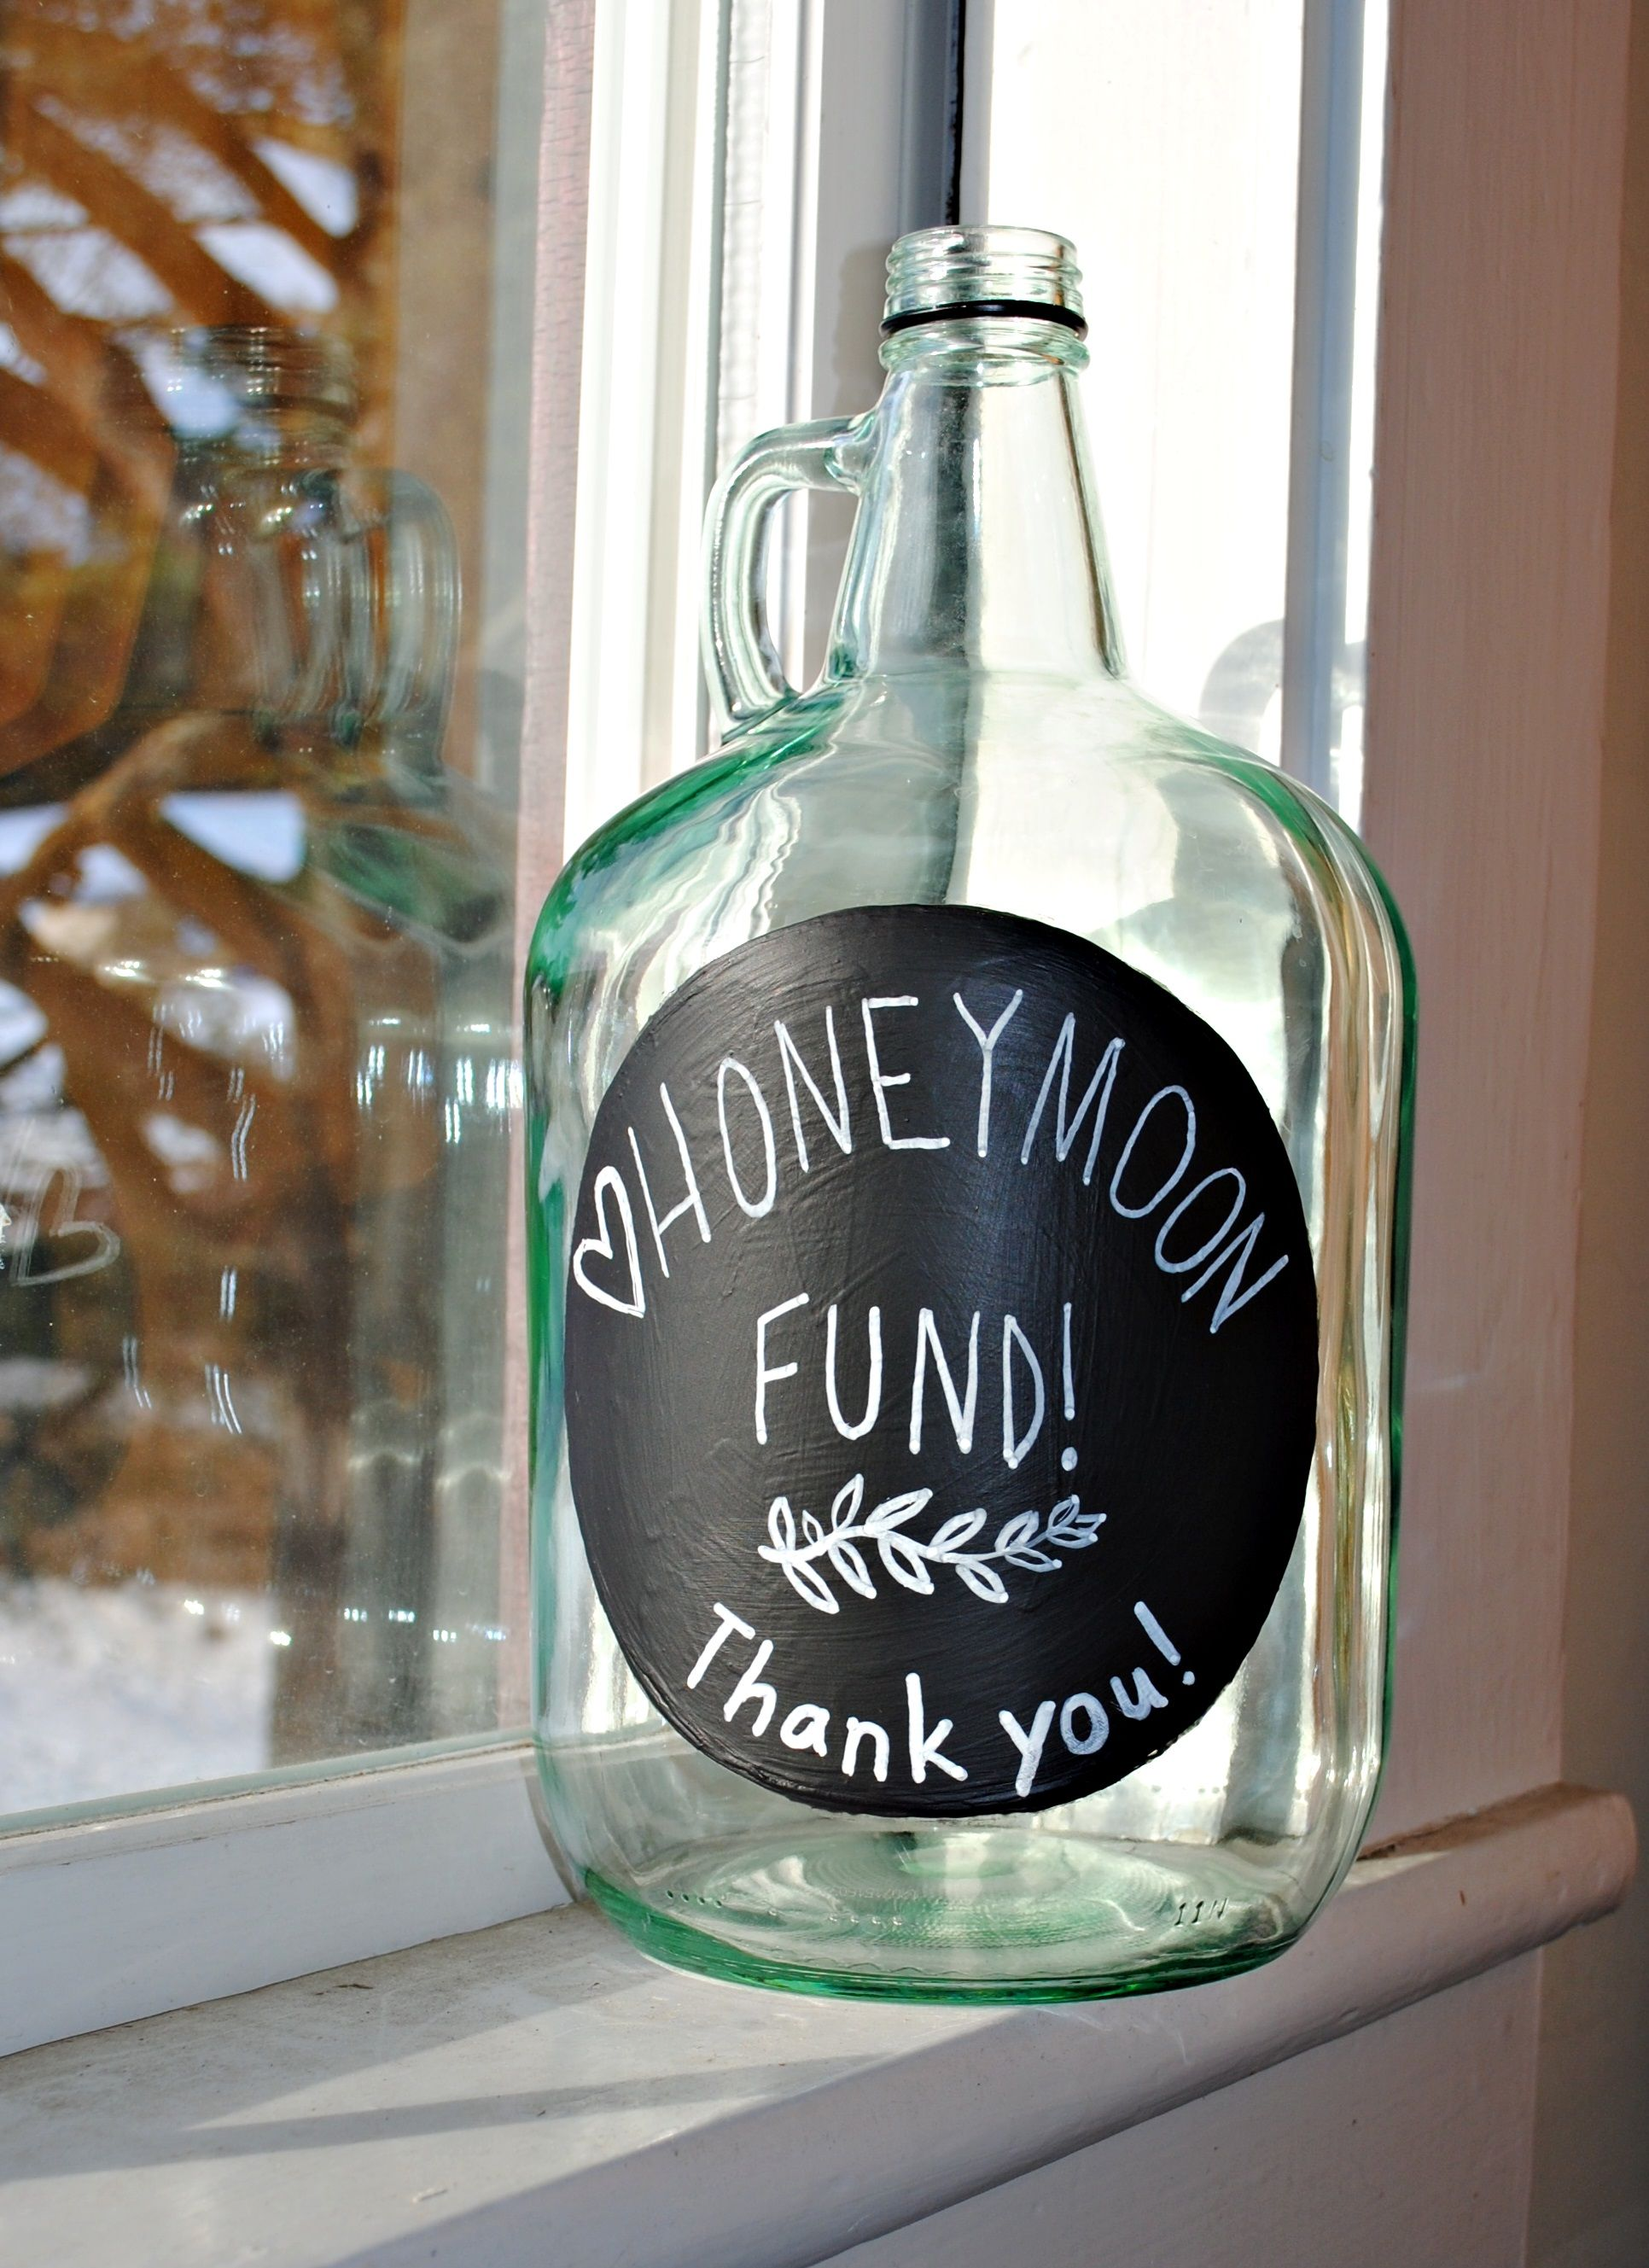 Honeymoon Fund Jar To Place Near The Drinks During The Reception Honeymoon Fund Jar Honeymoon Fund Honeymoon Jar